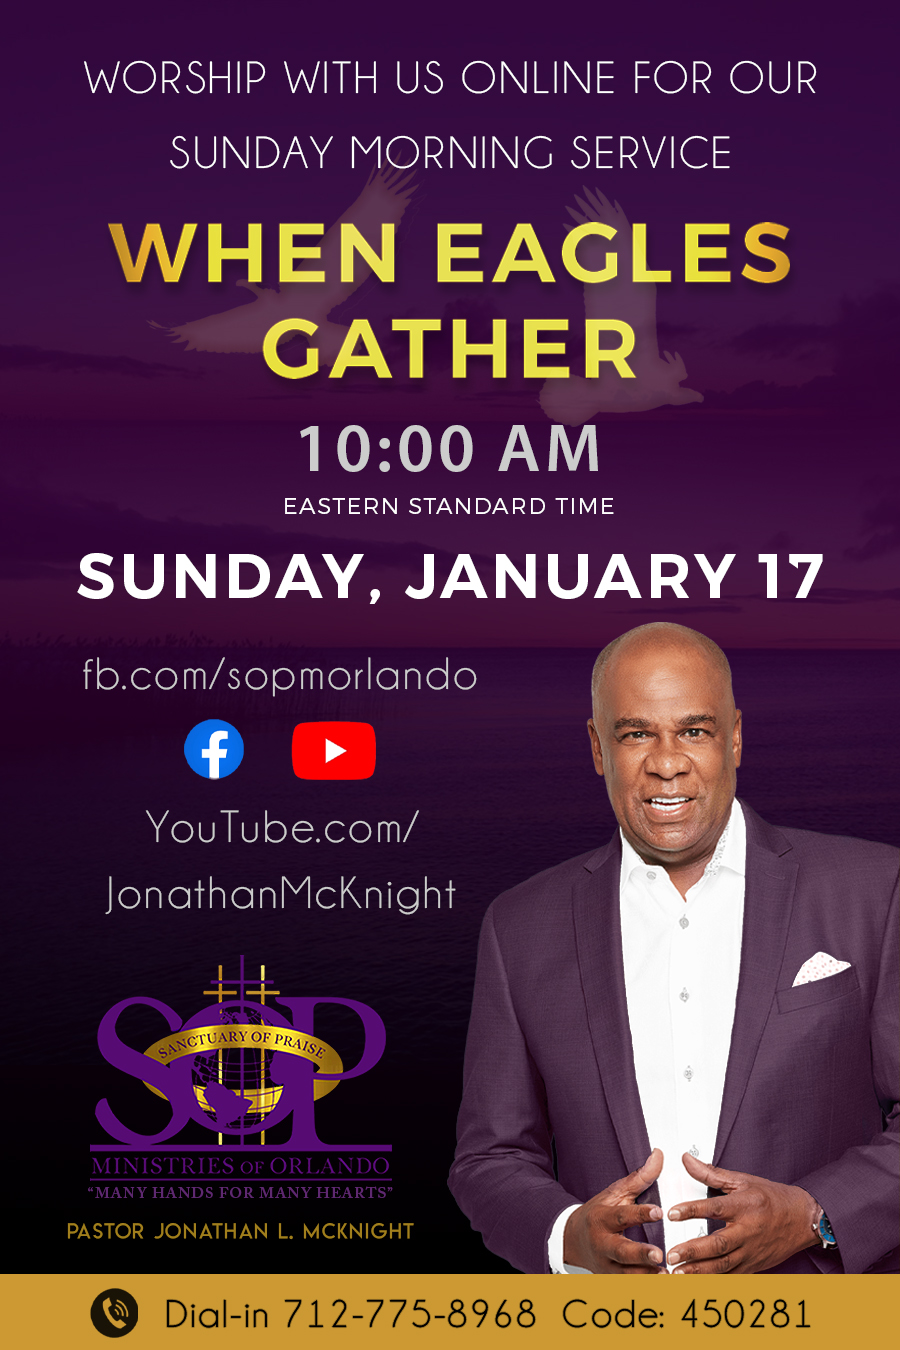 Sunday Morning Service on Facebook Live ad